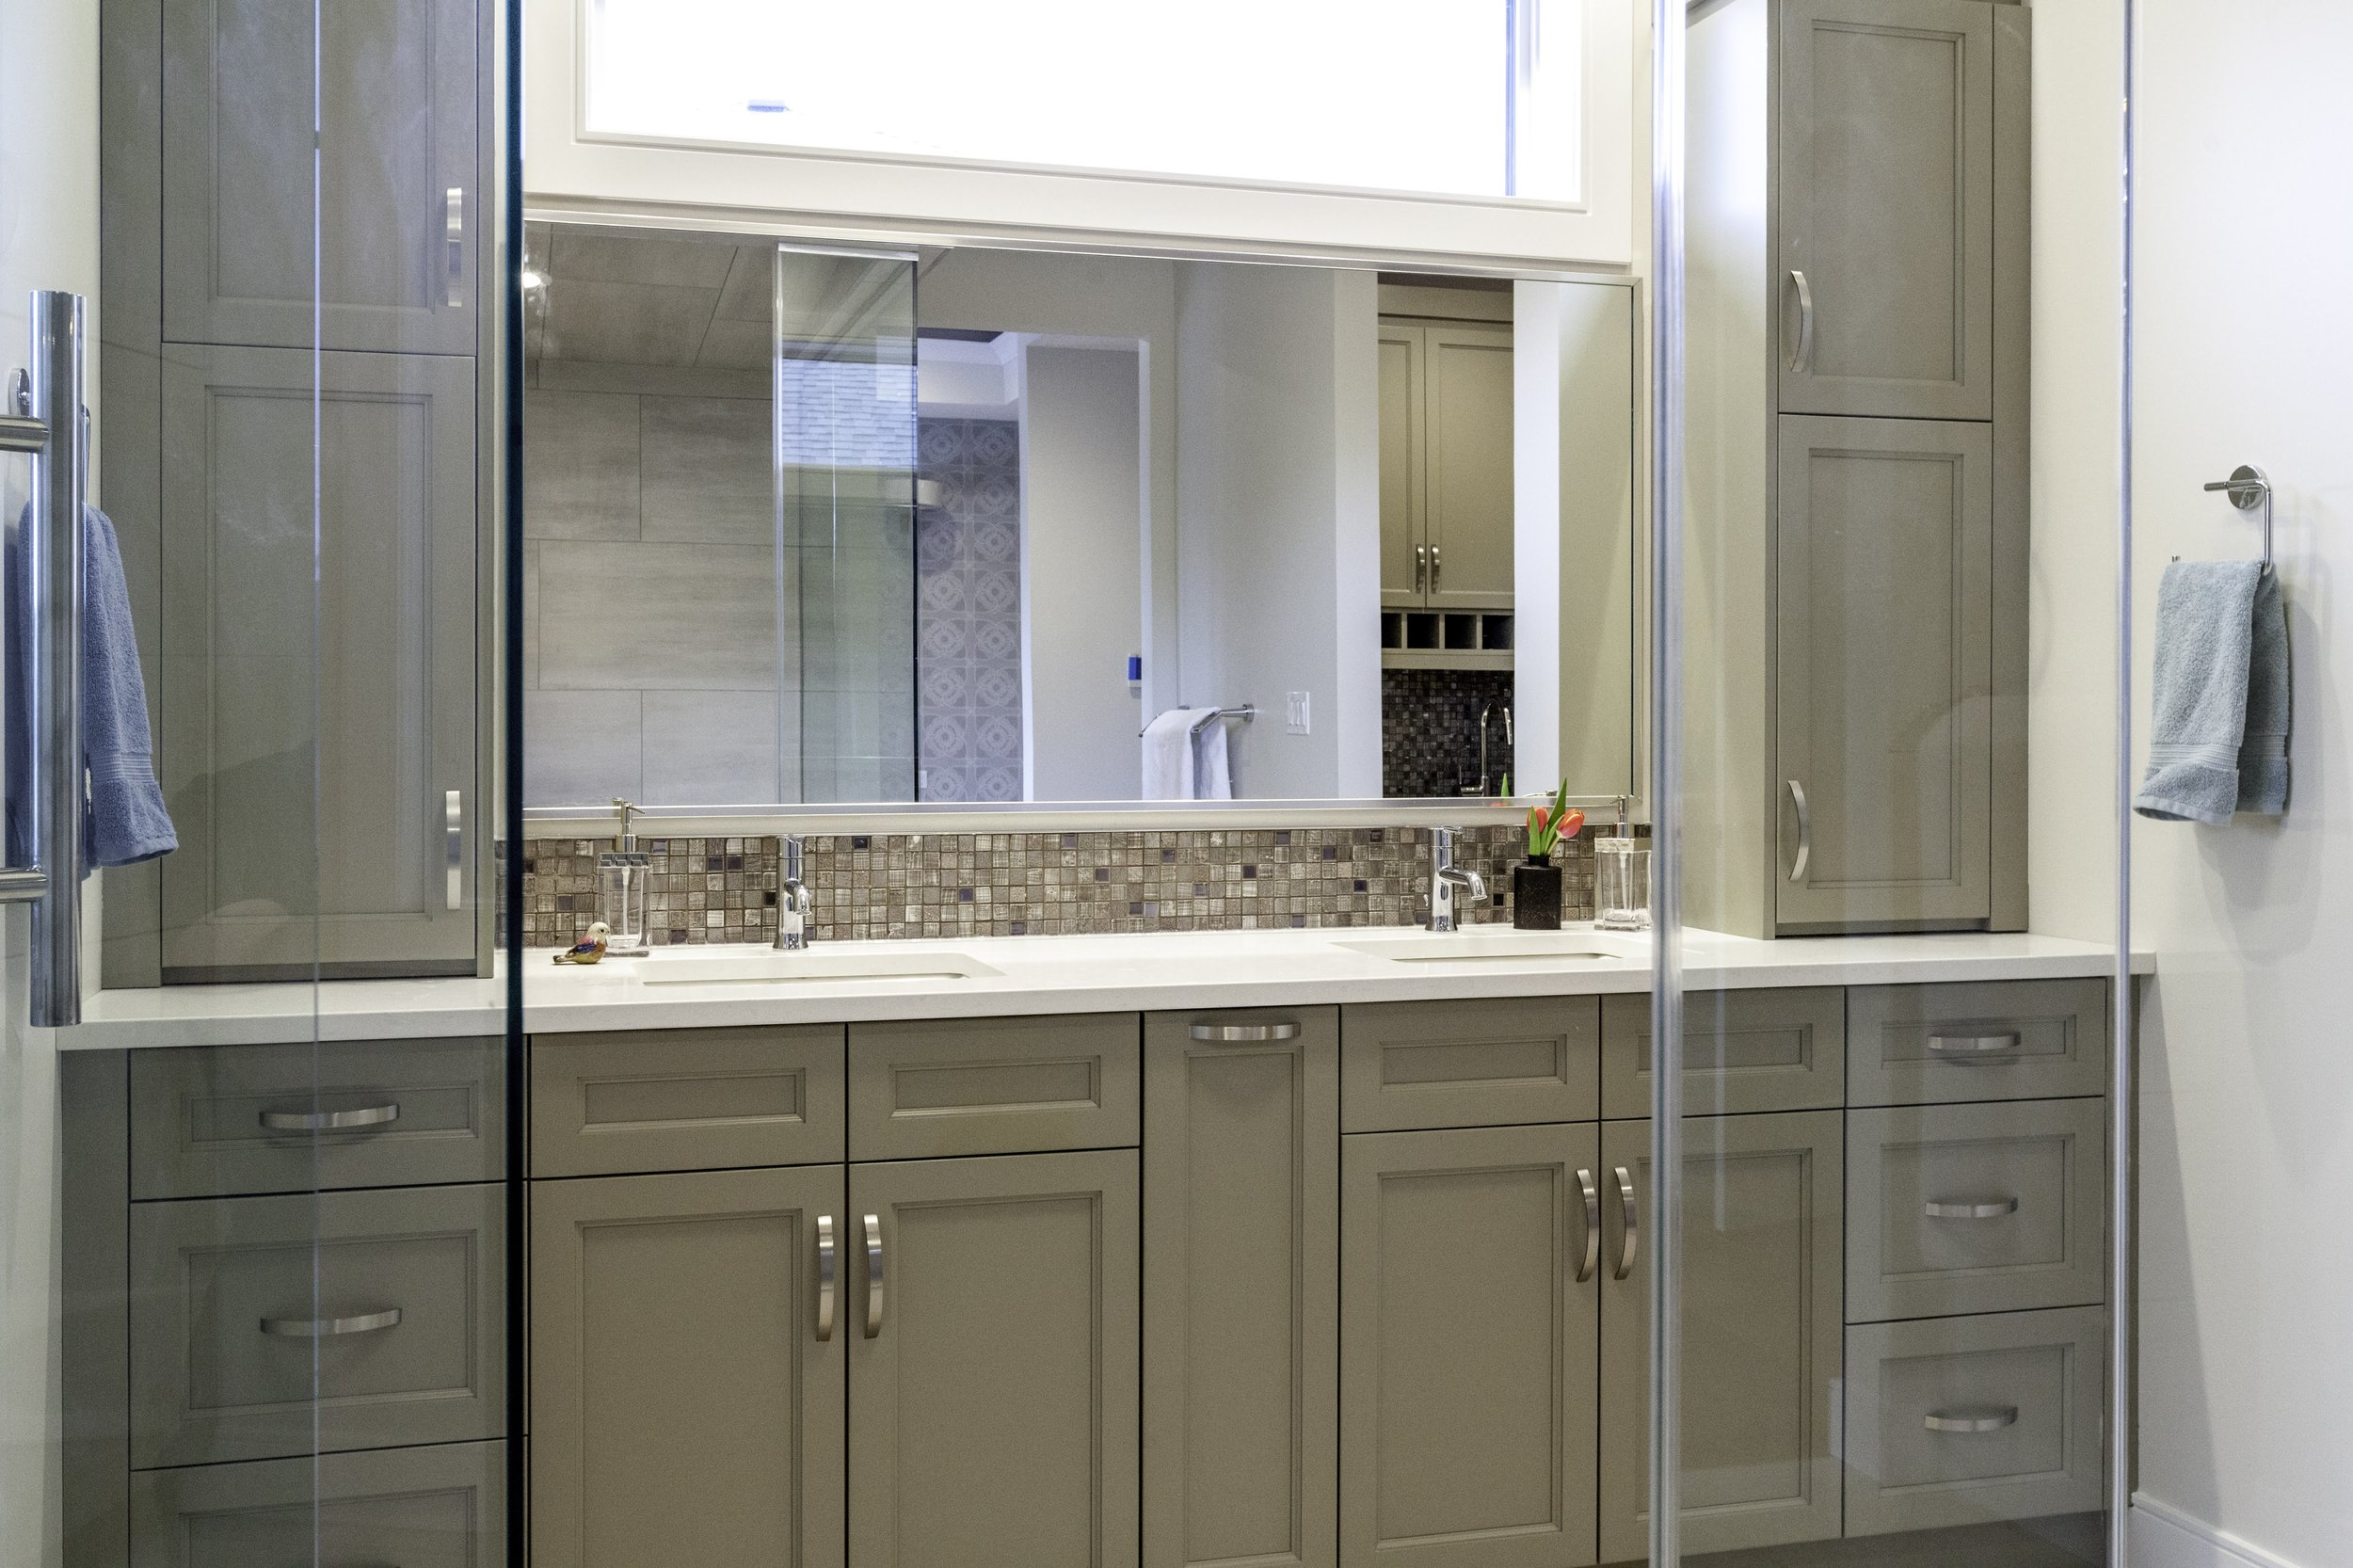 Ensuite vanity with grey cabinets and quartz counters.